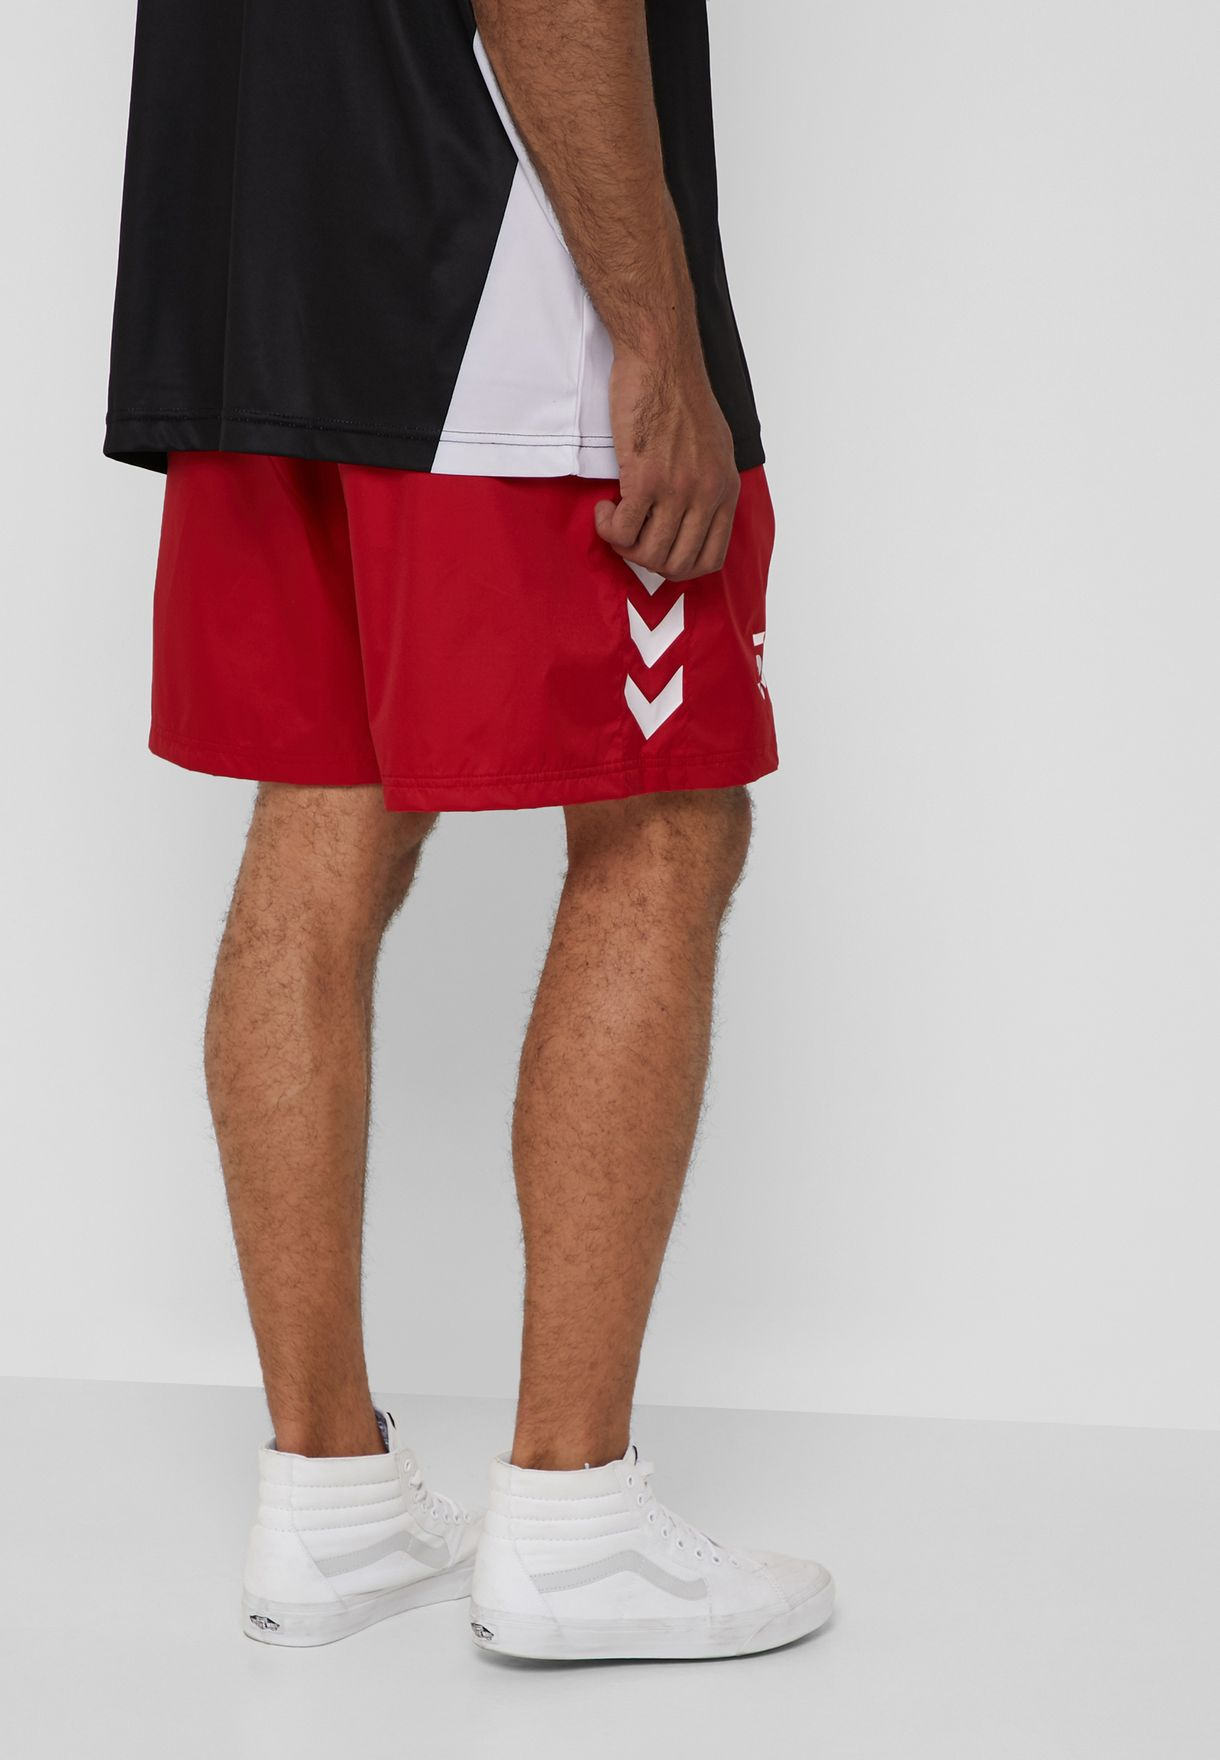 Hummel x Willy Chavarria Shorts